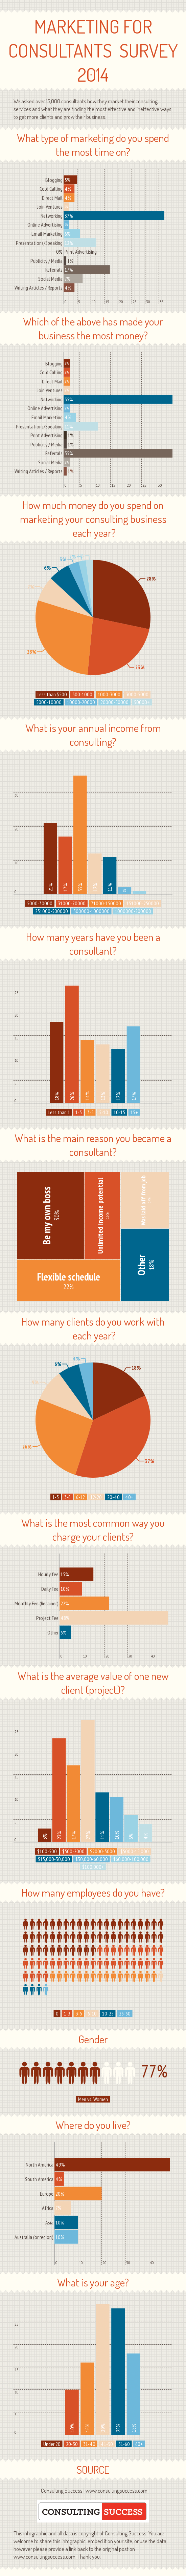 MarketingforConsultants-Infographic